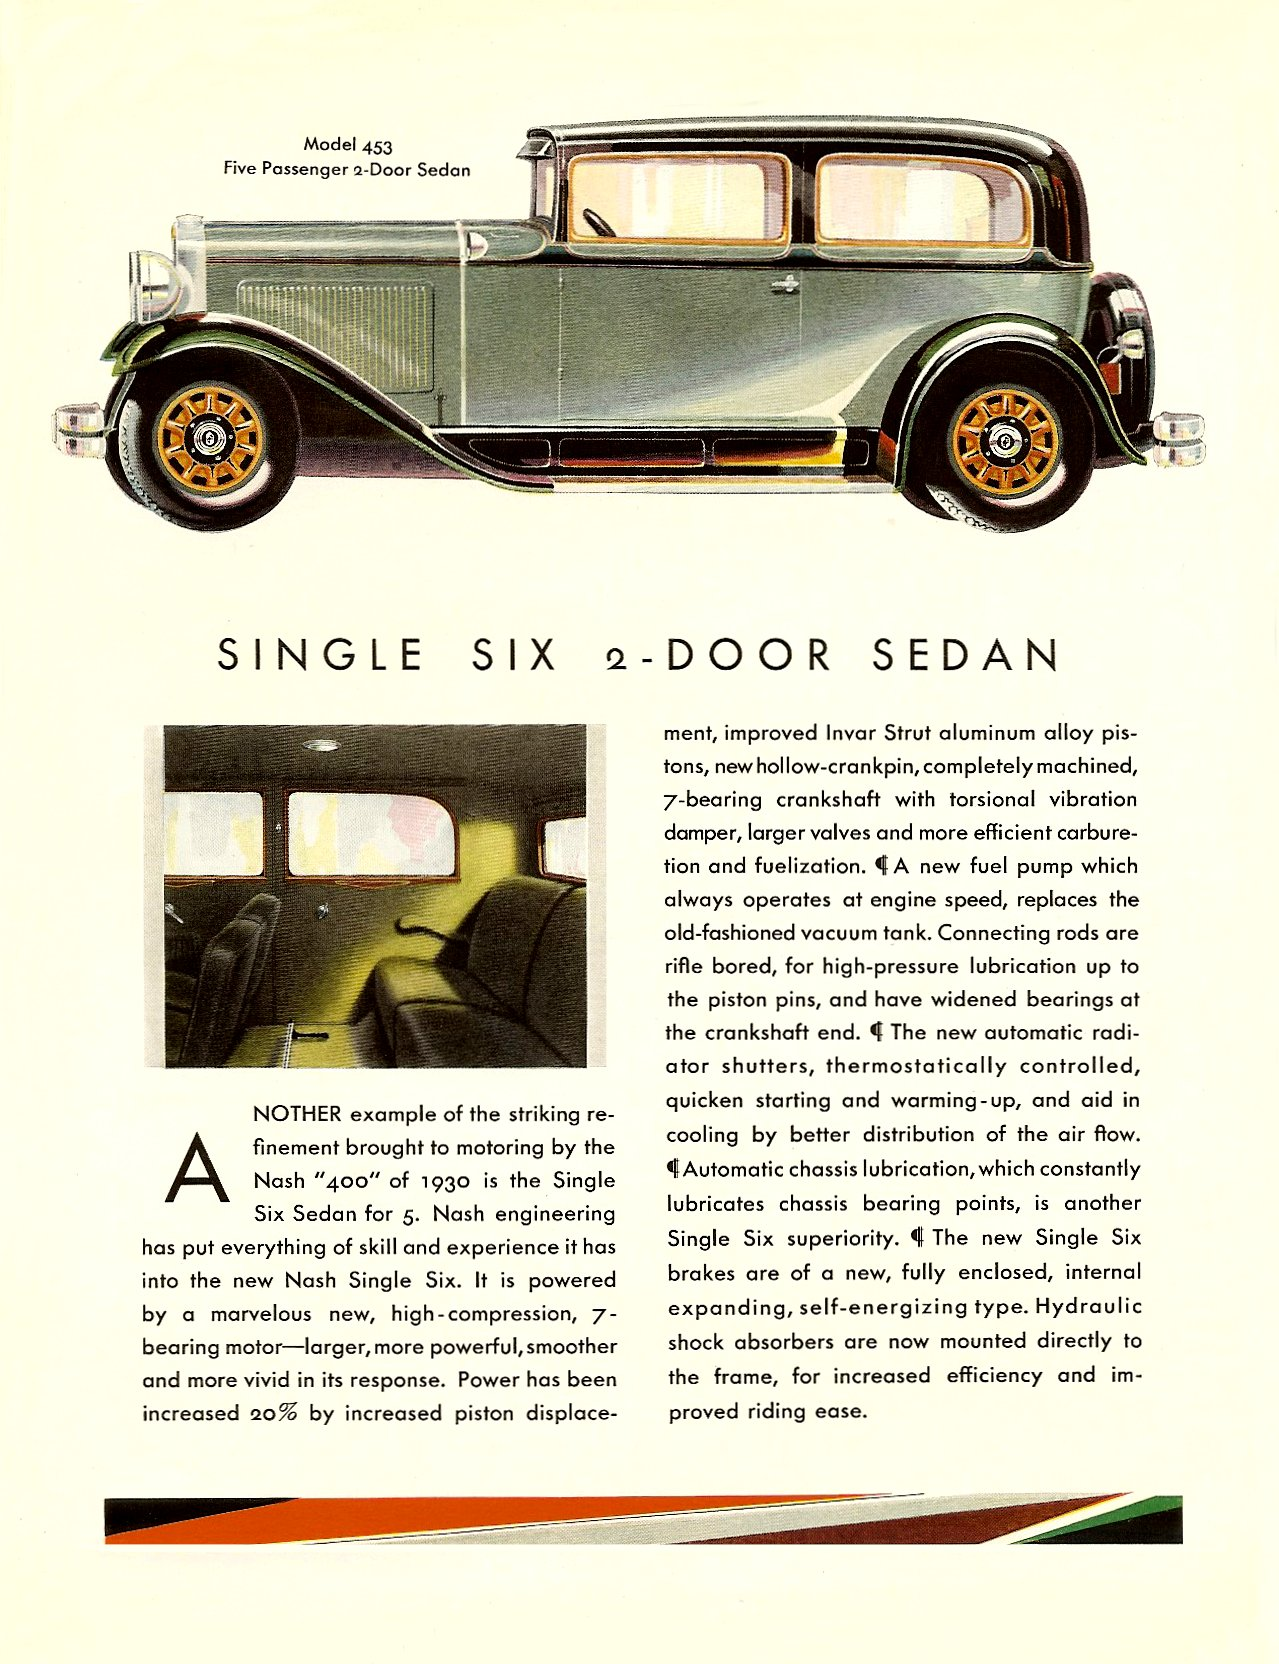 """NASH """"400"""" series for 1930 SINGLE IGNITION SEDANS Coupe • Cabriolet Page 2, 8.5″x11″"""